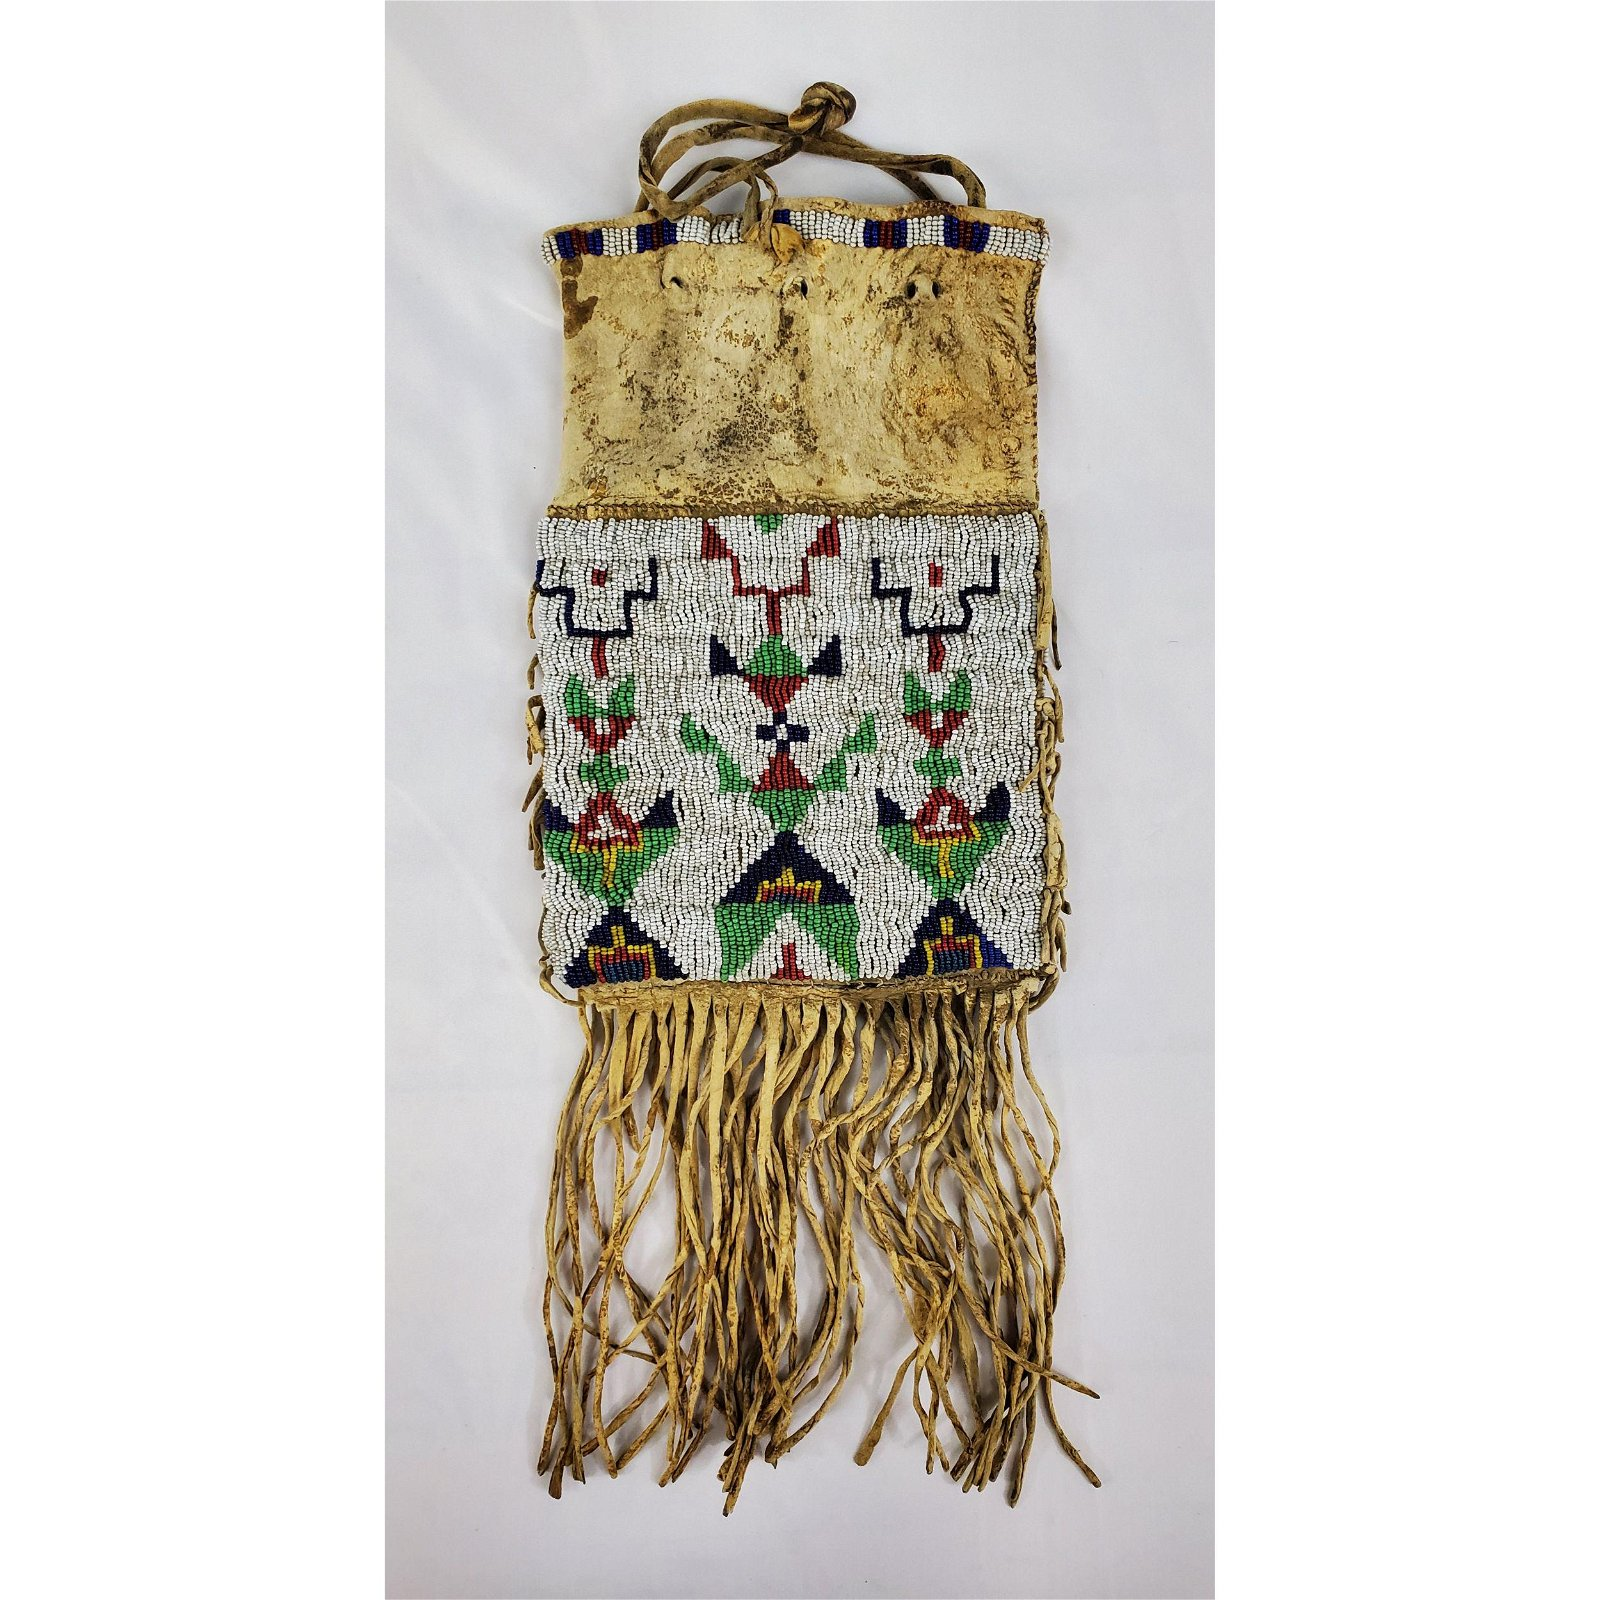 A fine antique Native American Indian beaded pipe bag